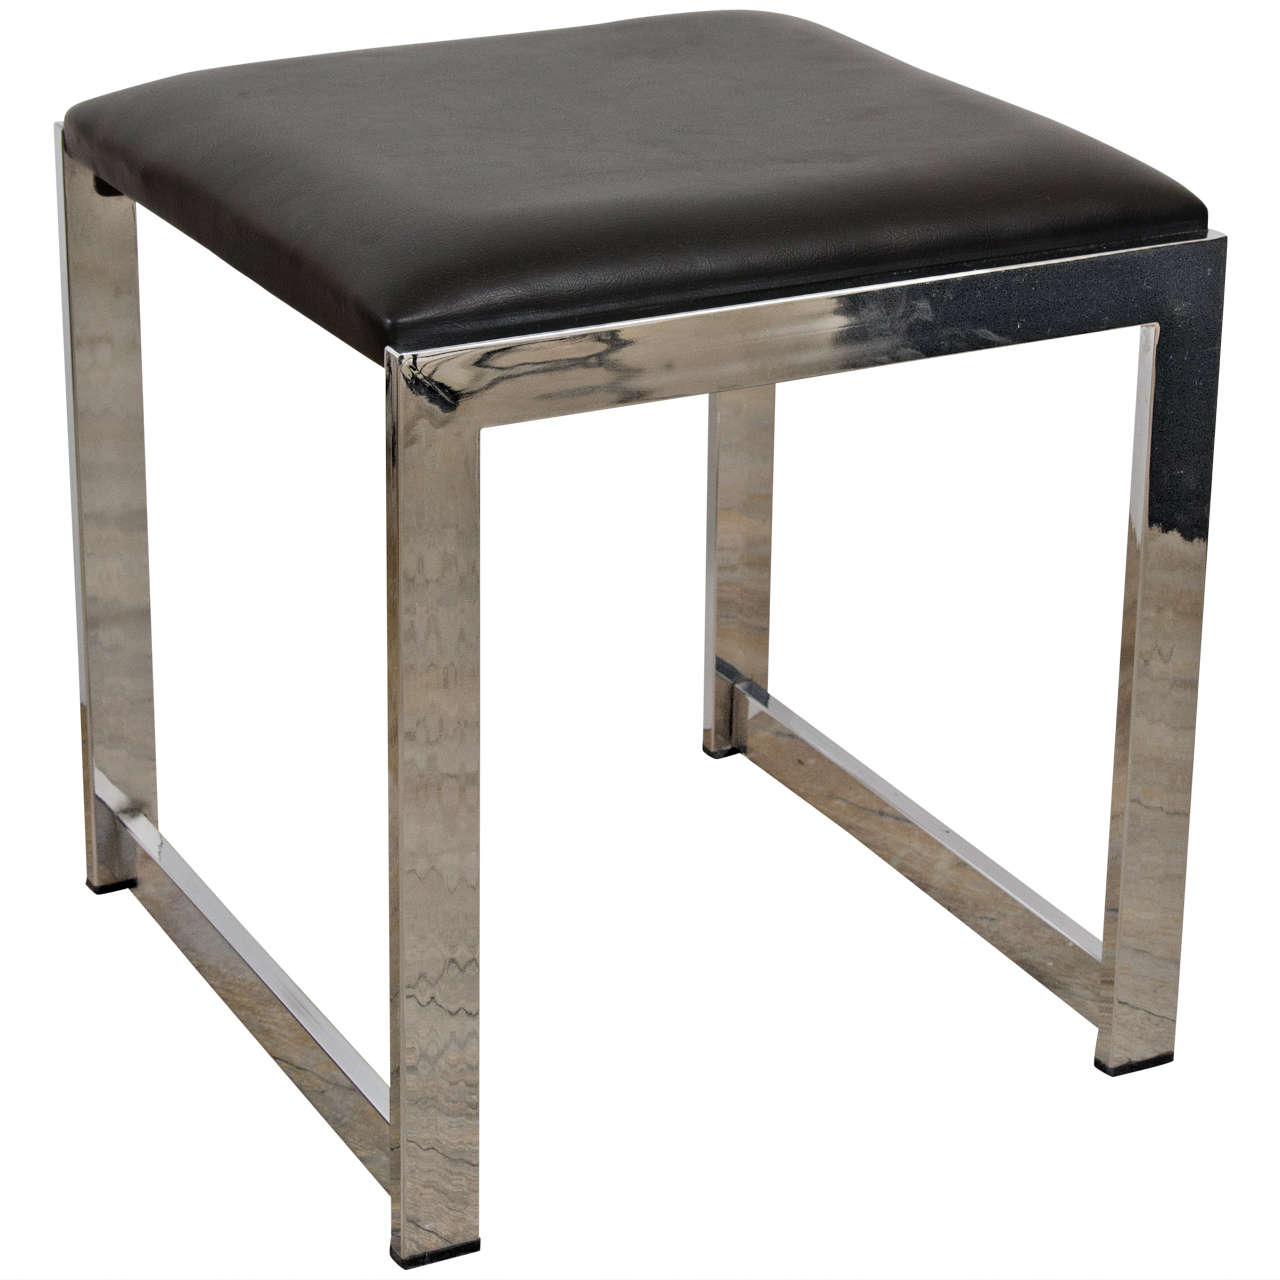 Mid Century Chrome And Vinyl Bench Or Stool At 1stdibs